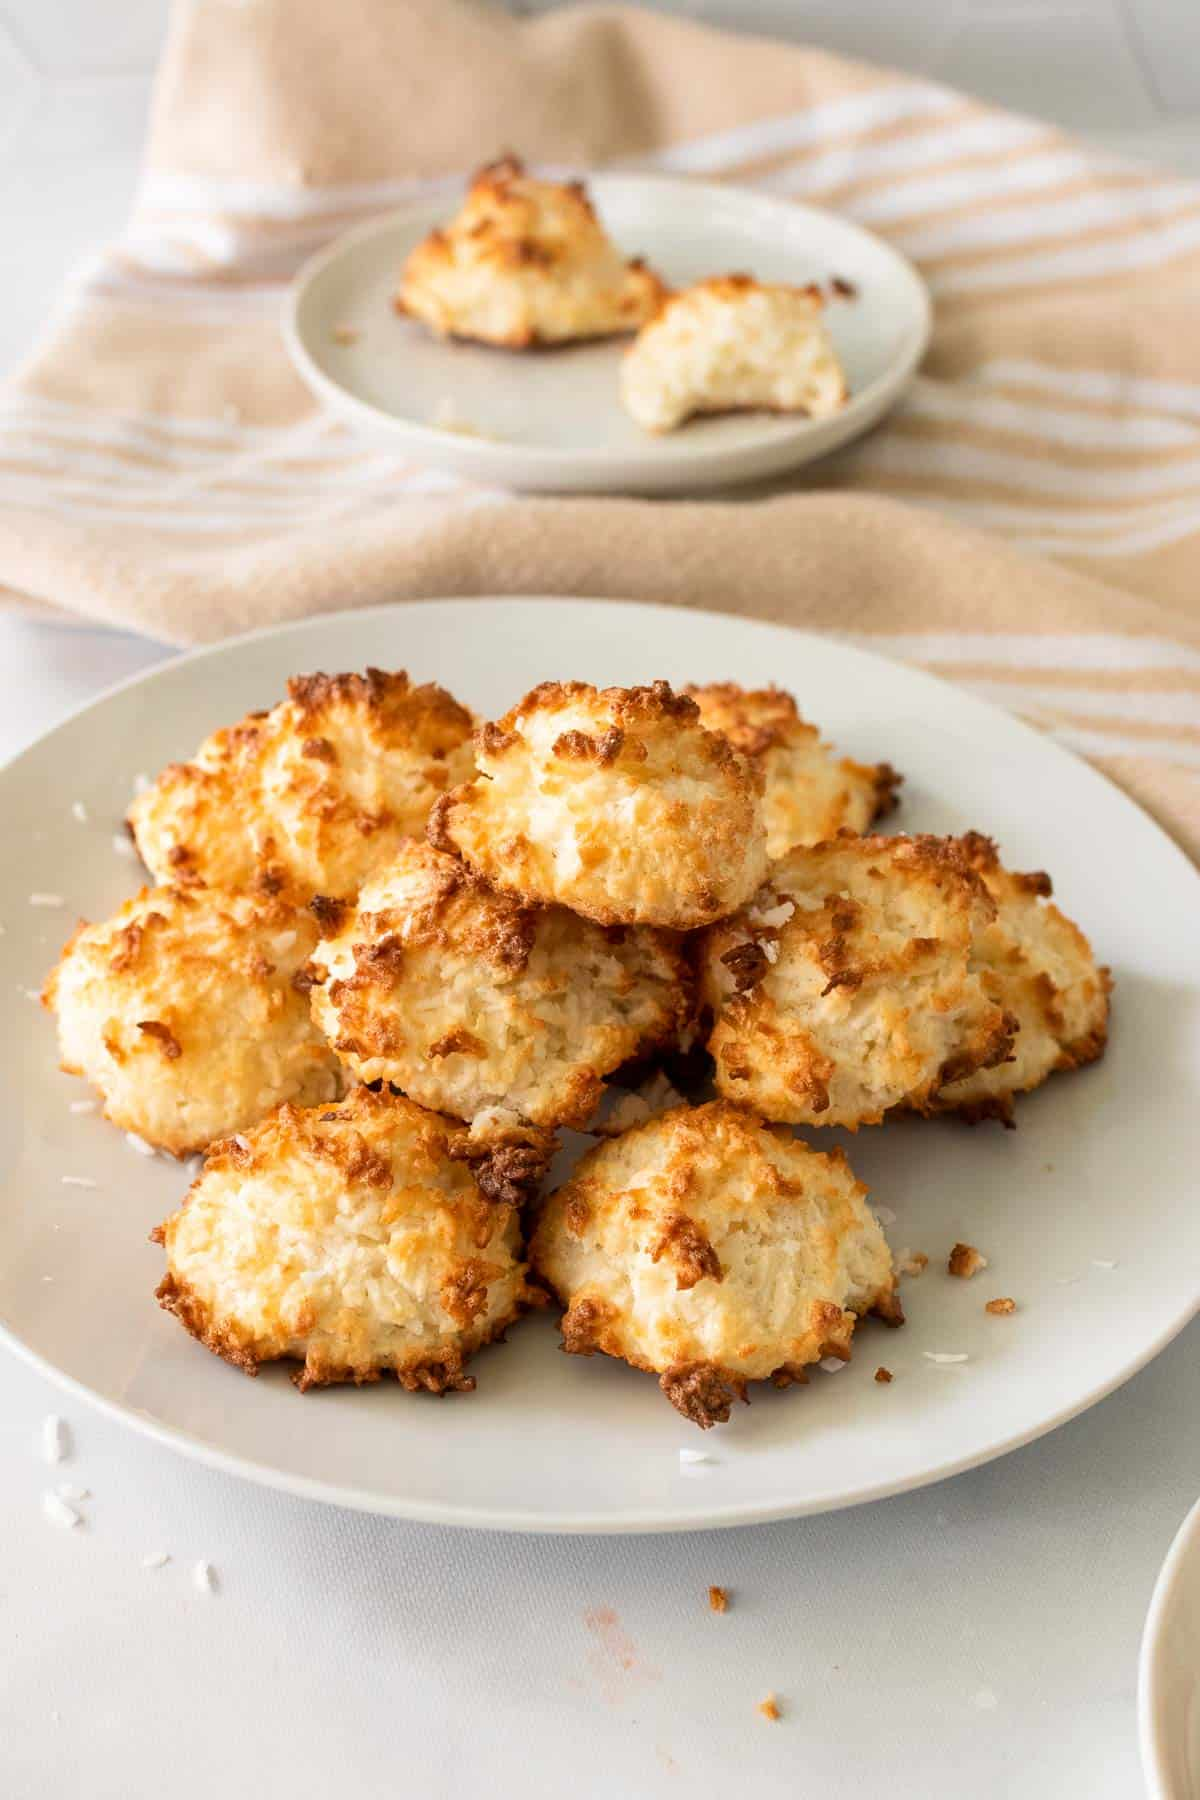 Stack of Keto Coconut Macaroons on a white plate, topped with shredded coconut